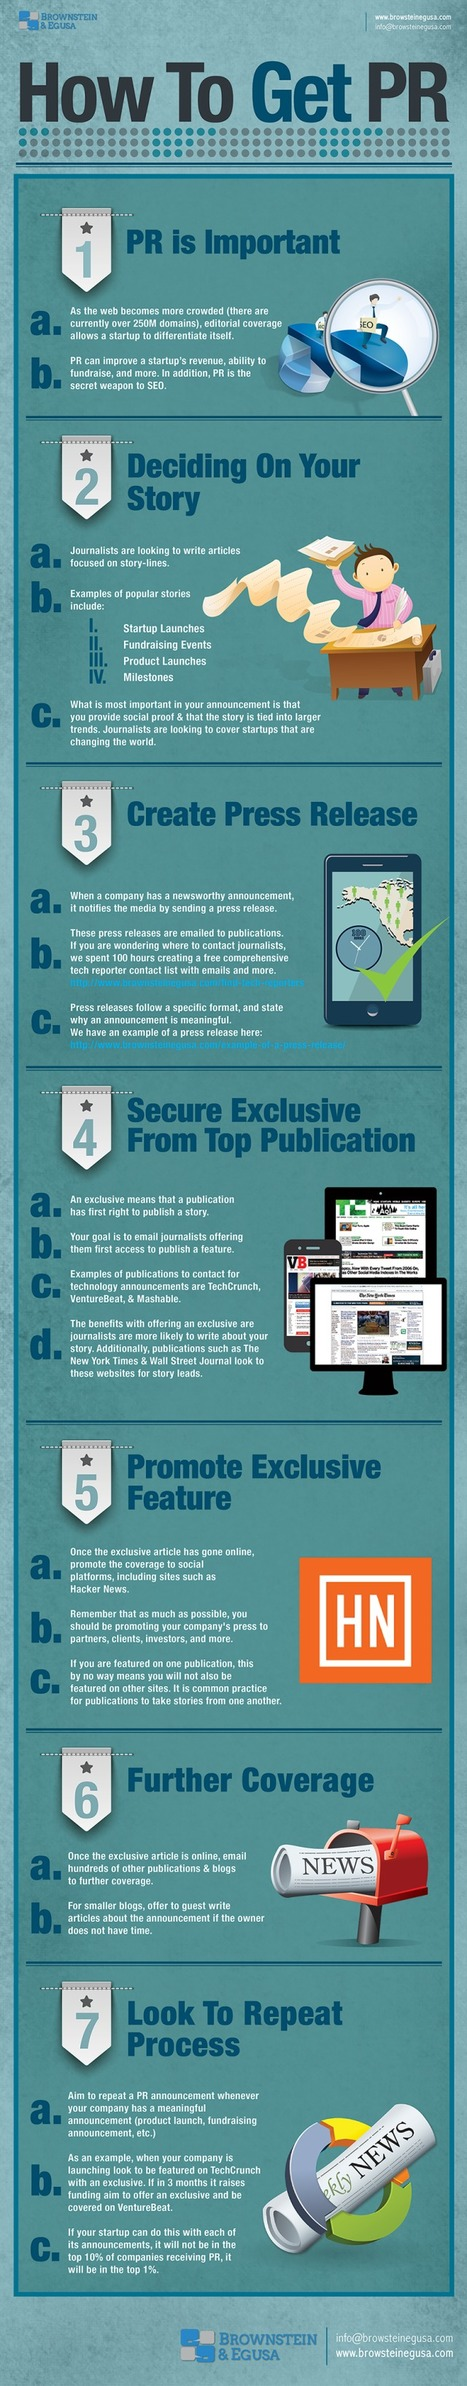 Infographic: How to Get PR - Marketing Technology Blog | #TheMarketingAutomationAlert | all | Scoop.it